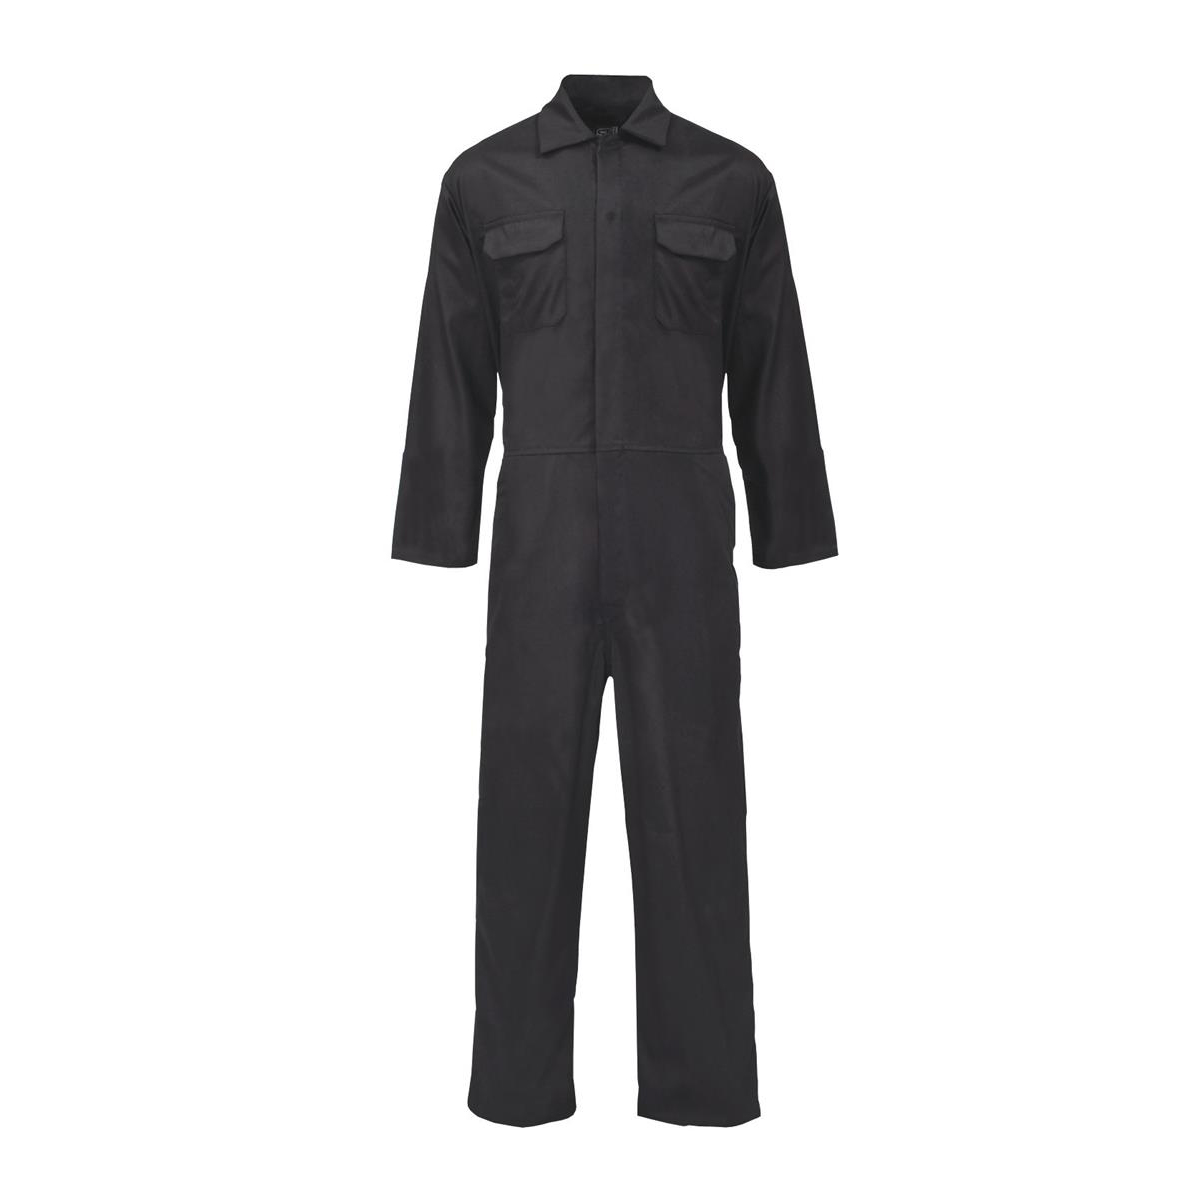 Coverall Basic with Popper Front Opening Polycotton XXXLarge Black Ref RPCBSBL52 *Approx 3 Day Leadtime*